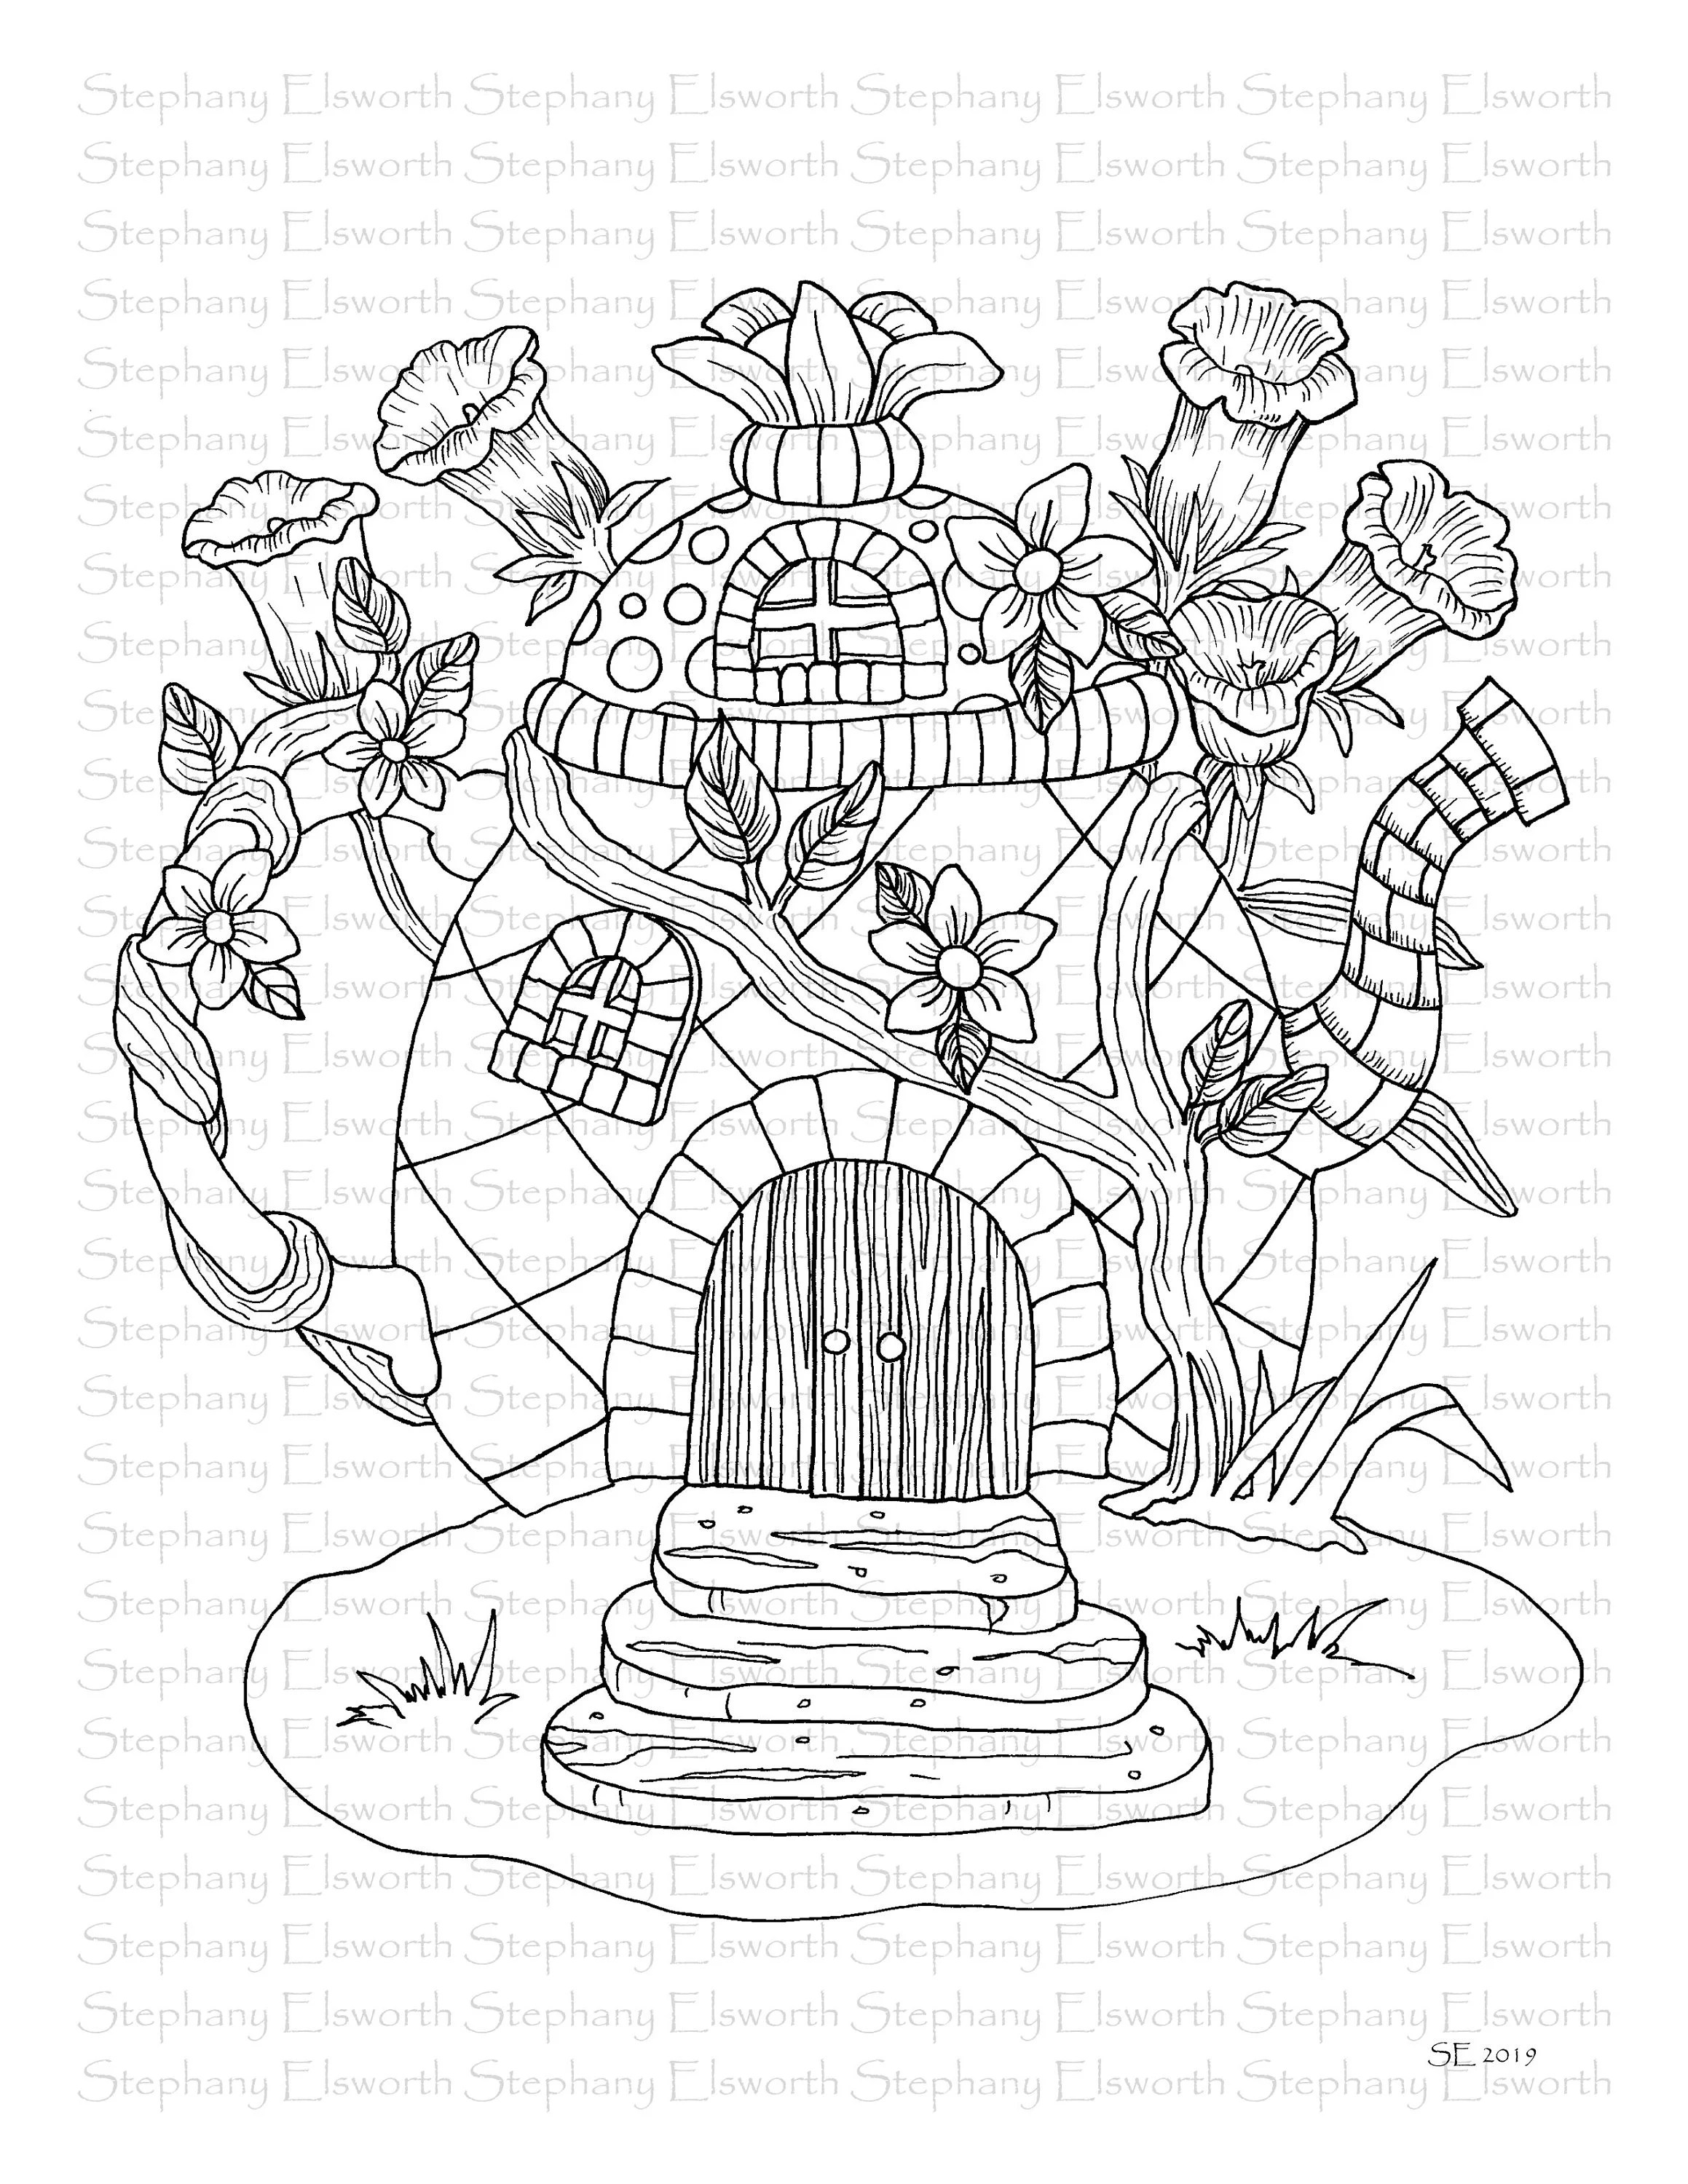 Faerie Houses II Set 4 PDF Printable Coloring Pages 16-20